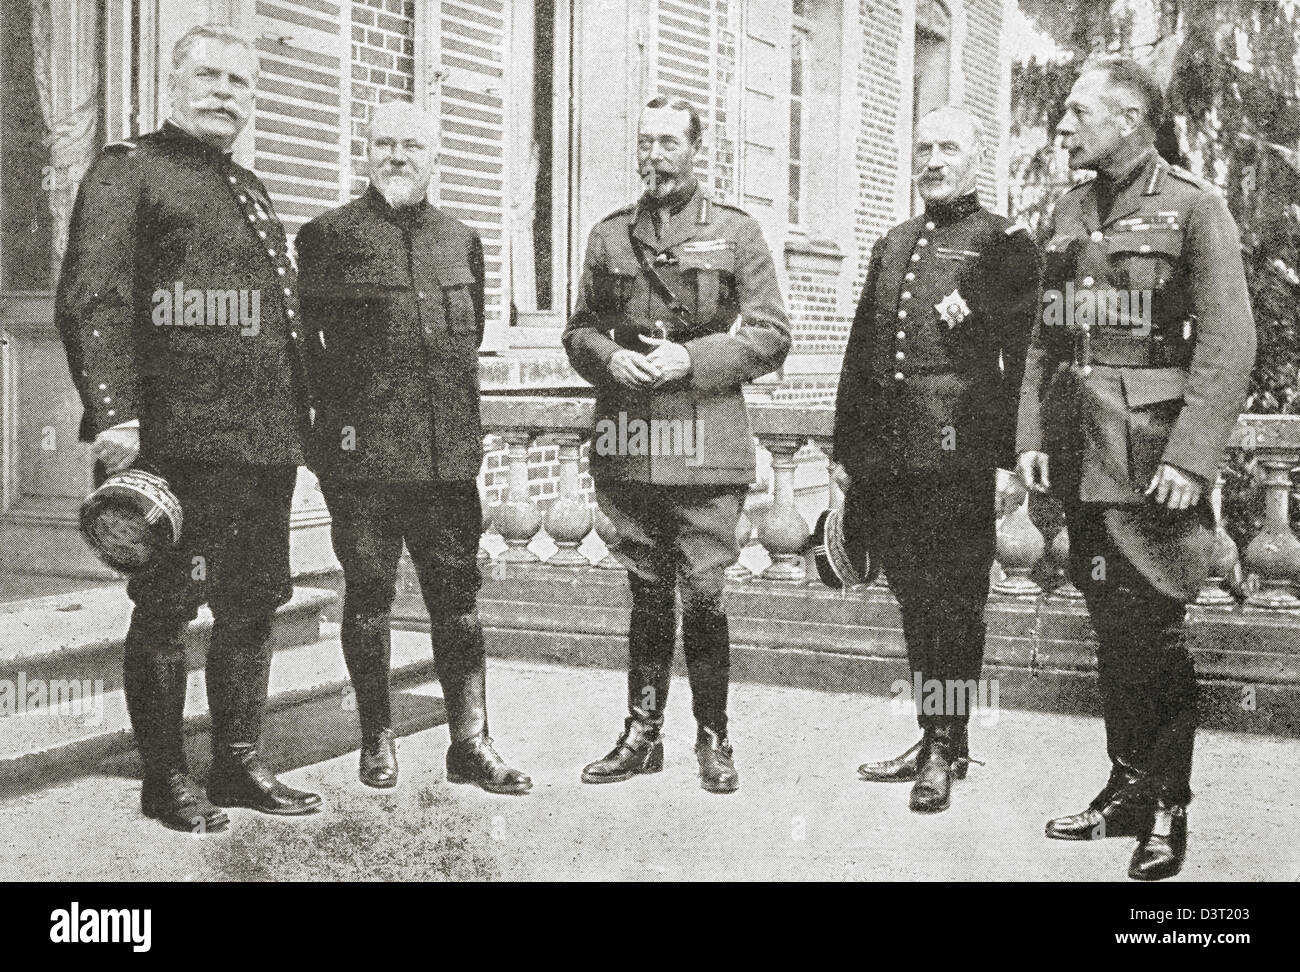 King George V of Great Britain with President Poincare, General Foch, Sir Douglas Haig and General Joffre during - Stock Image